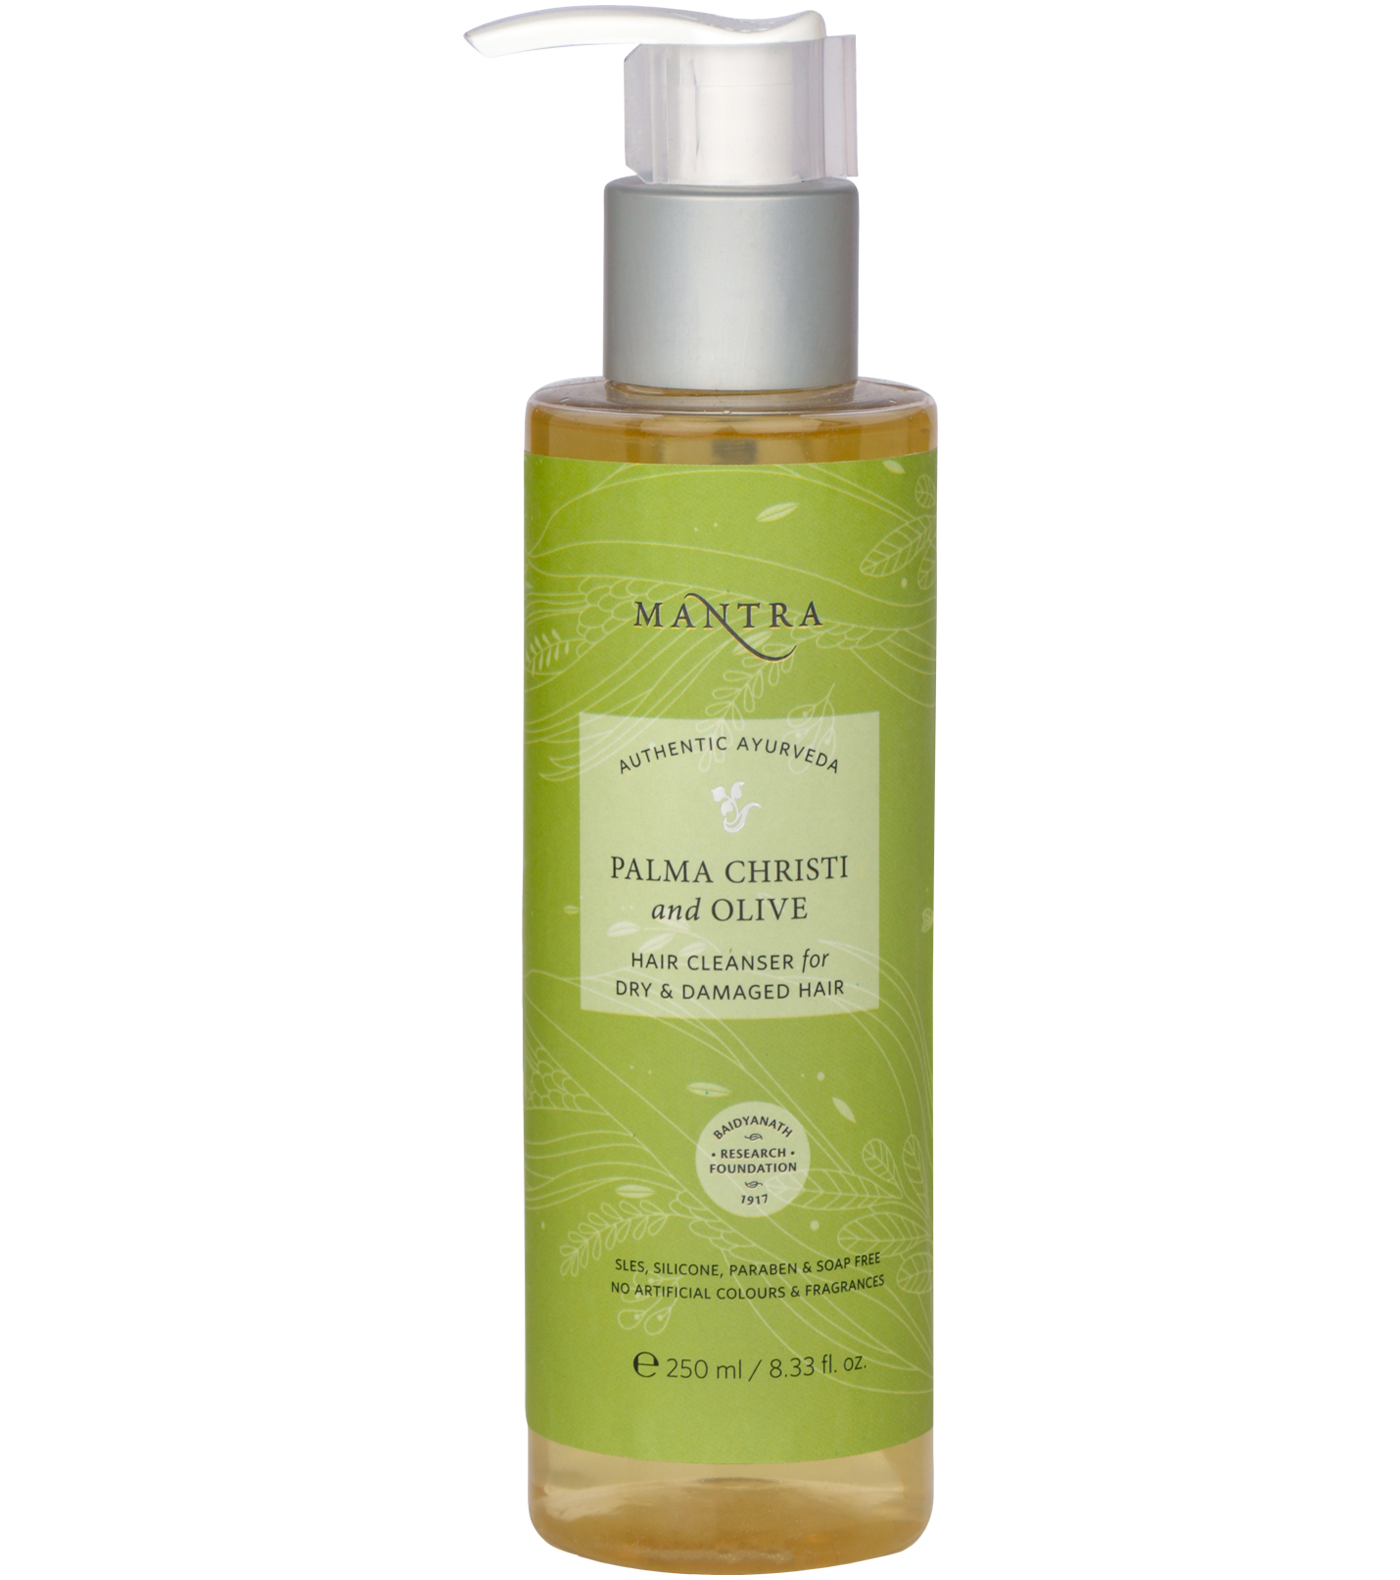 Palma Christi and Olive Hair Cleanser for Dry & Damaged Hair